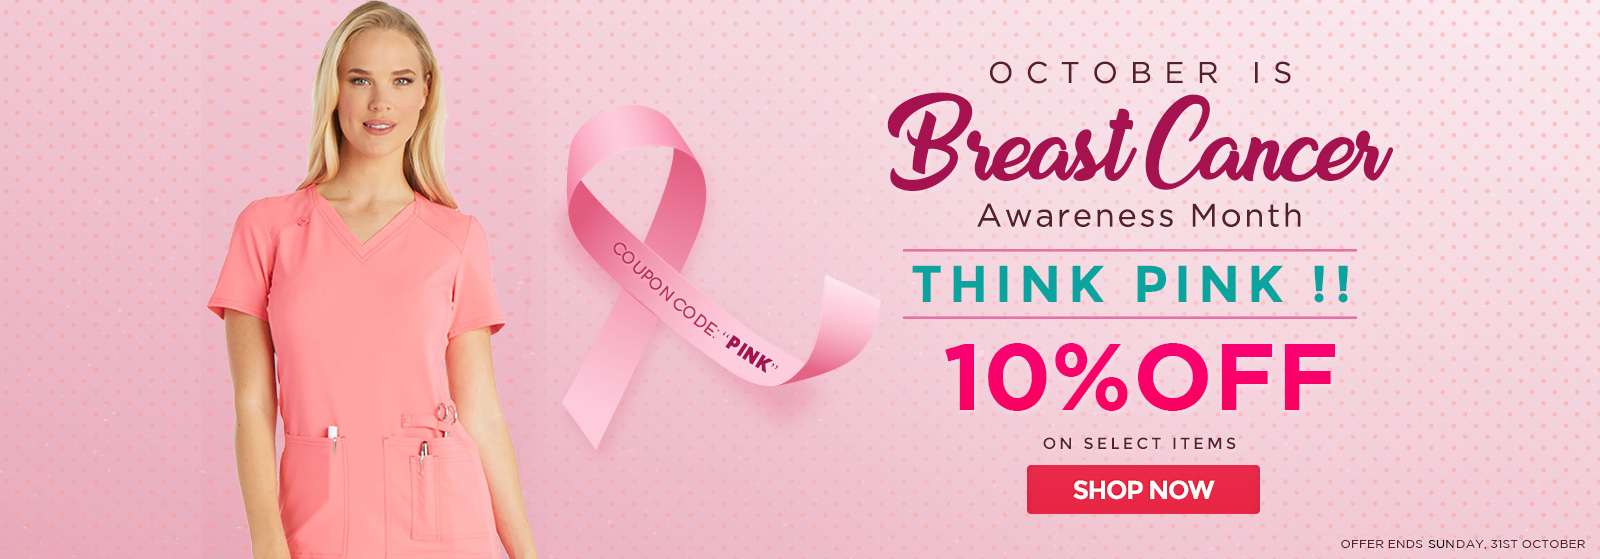 Breast-Cancer-Awareness.jpg